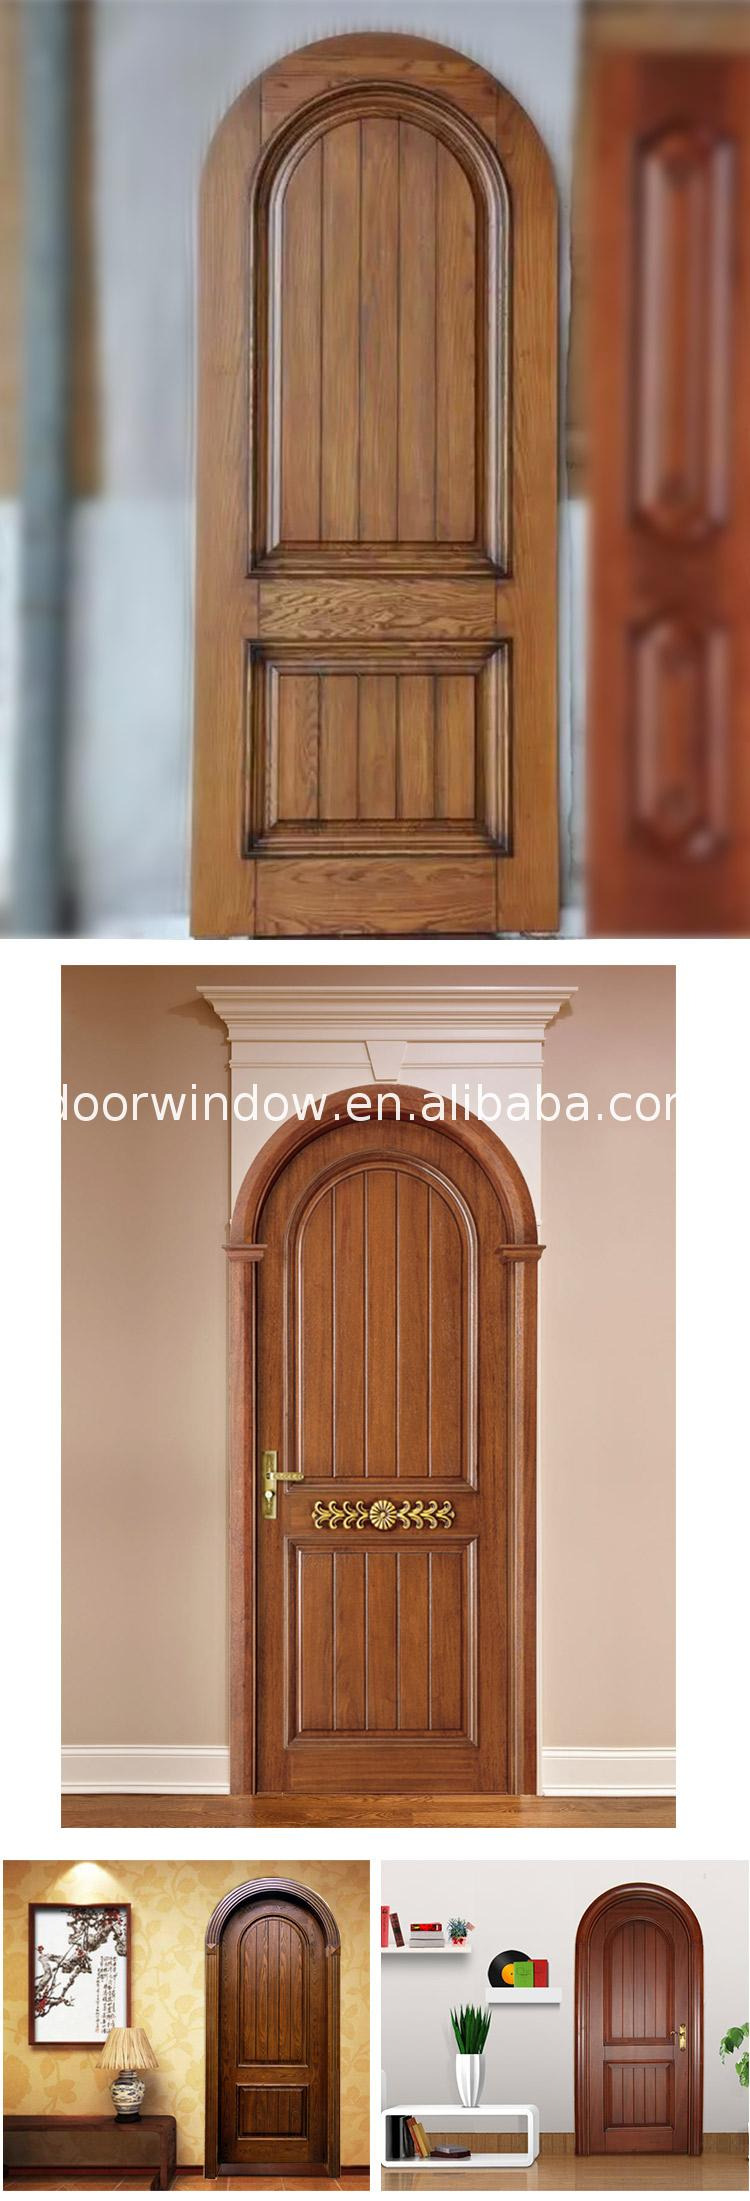 Main Door Arch Designs Awesome New Design Main Door Arch Designs Interior Doors for Sale area